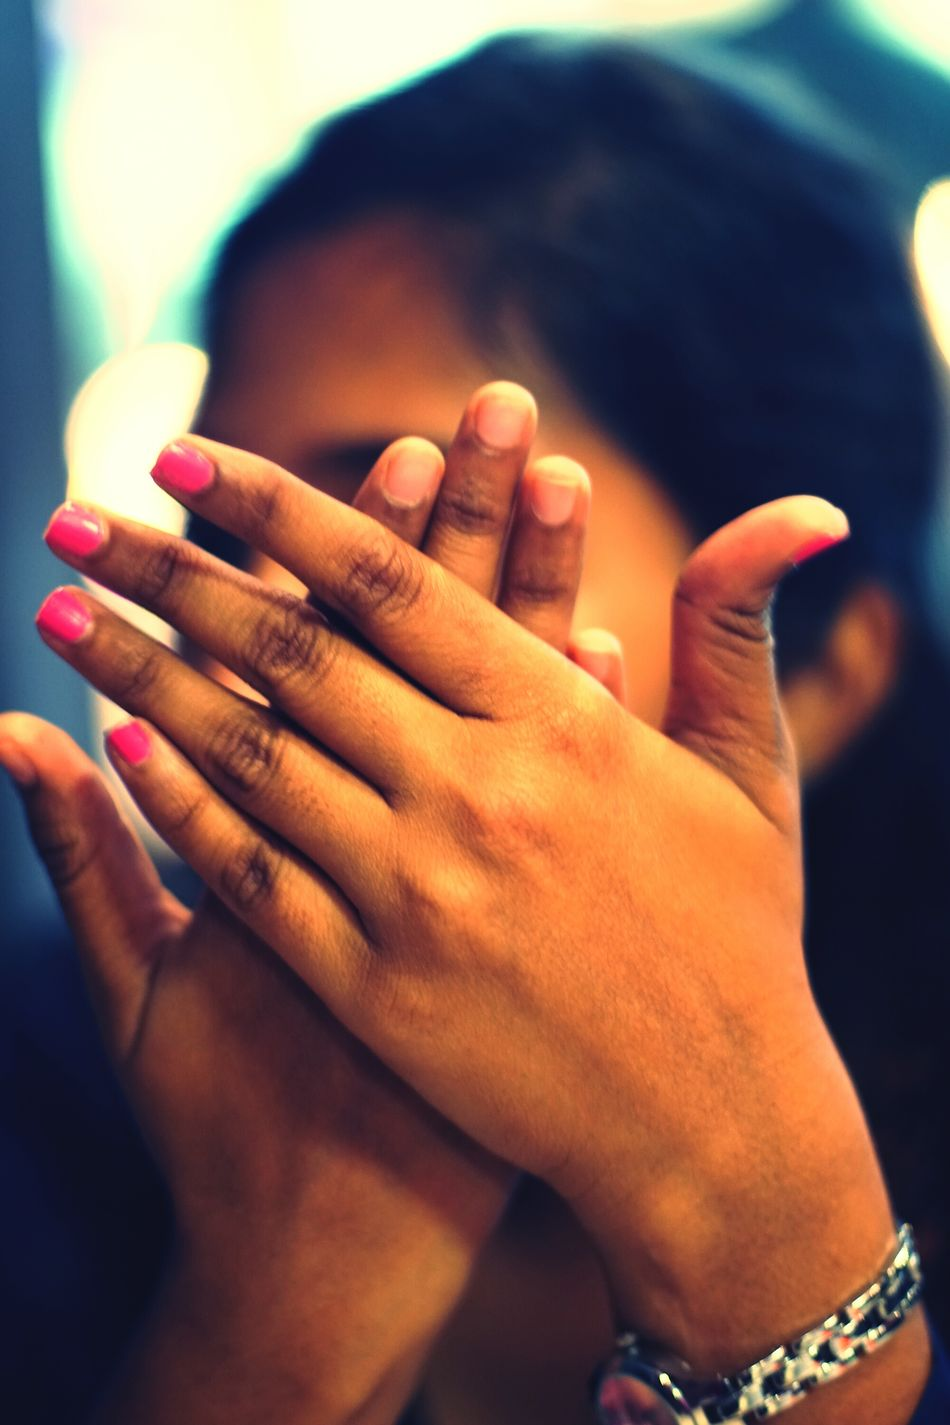 A Candid Portrait of Hand... Shy Shygirl Shyness Love Perfect Shot Sony A6500 Close-up Photooftheday Unique Perspectives Love Photography Photo People Wonderful Creative Photography Illusionist Beautiful